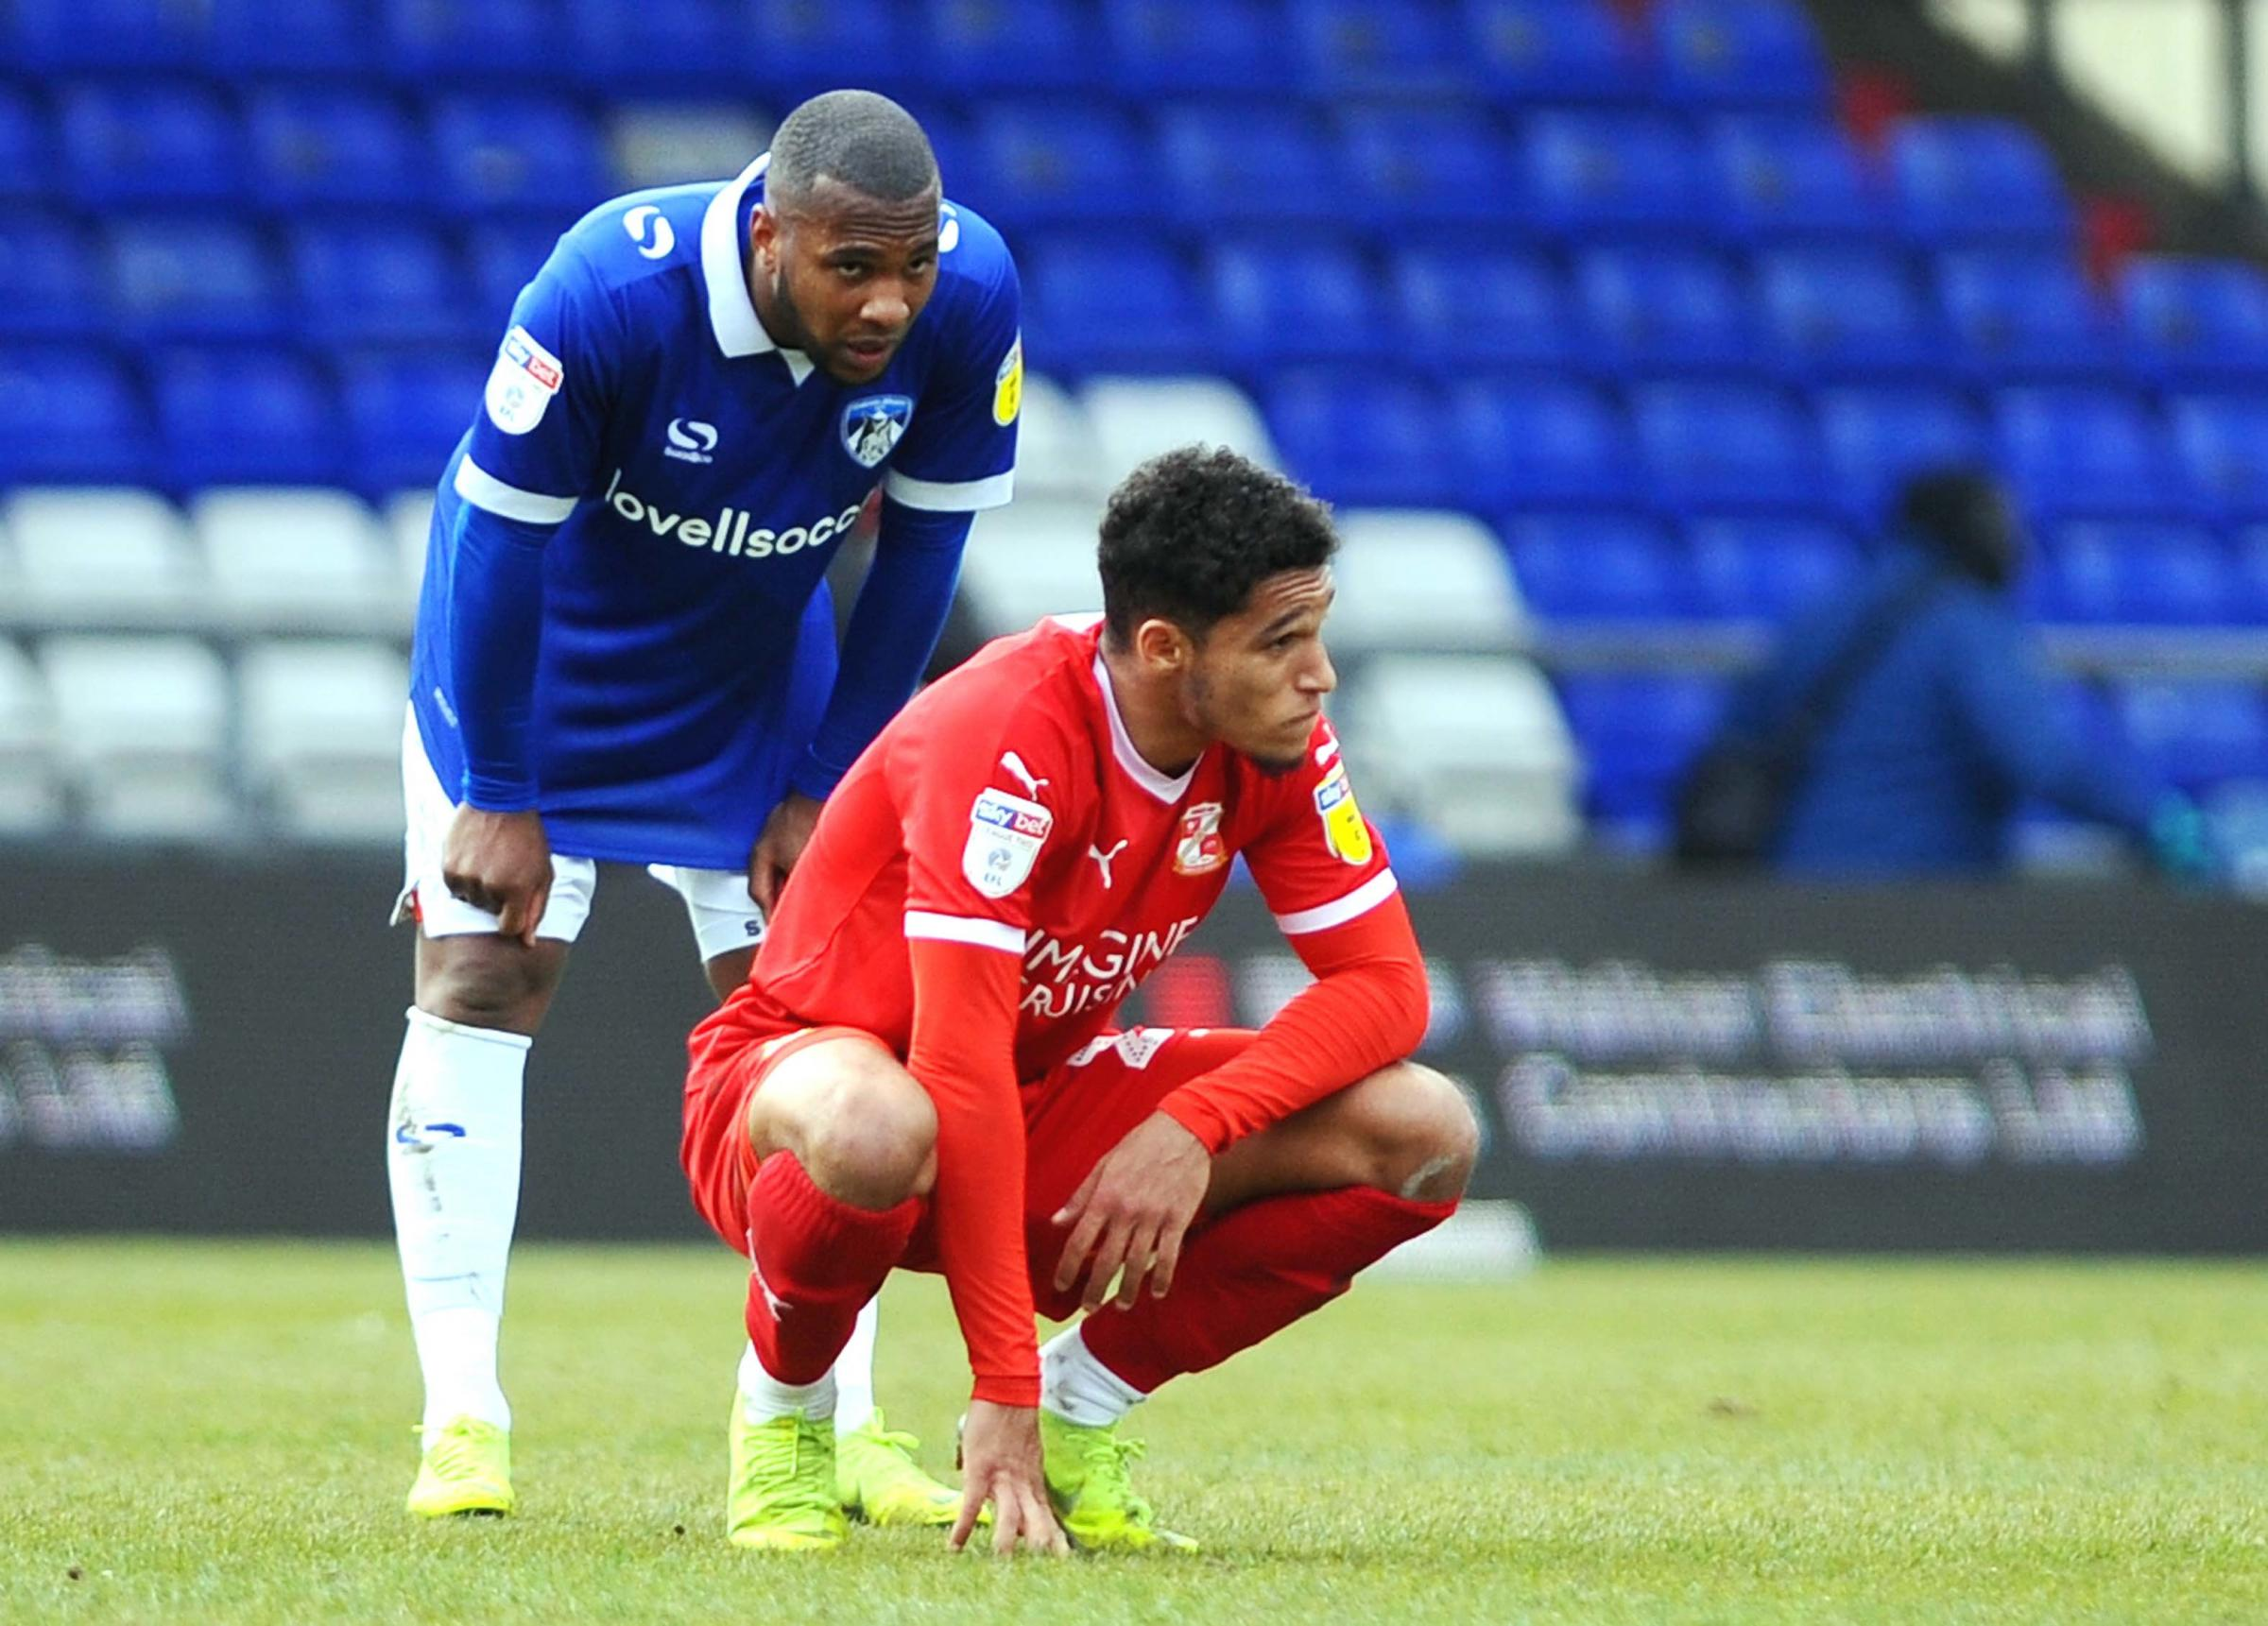 Swindon Town's Kyle Knoyle (red) and Oldham Athletic's Gevaro Nepomuceno cannot hide their disappointment following the full-time whistle of the 2-2 draw between the two teams at Bounday Park on Saturday - a result that left both with an uphil